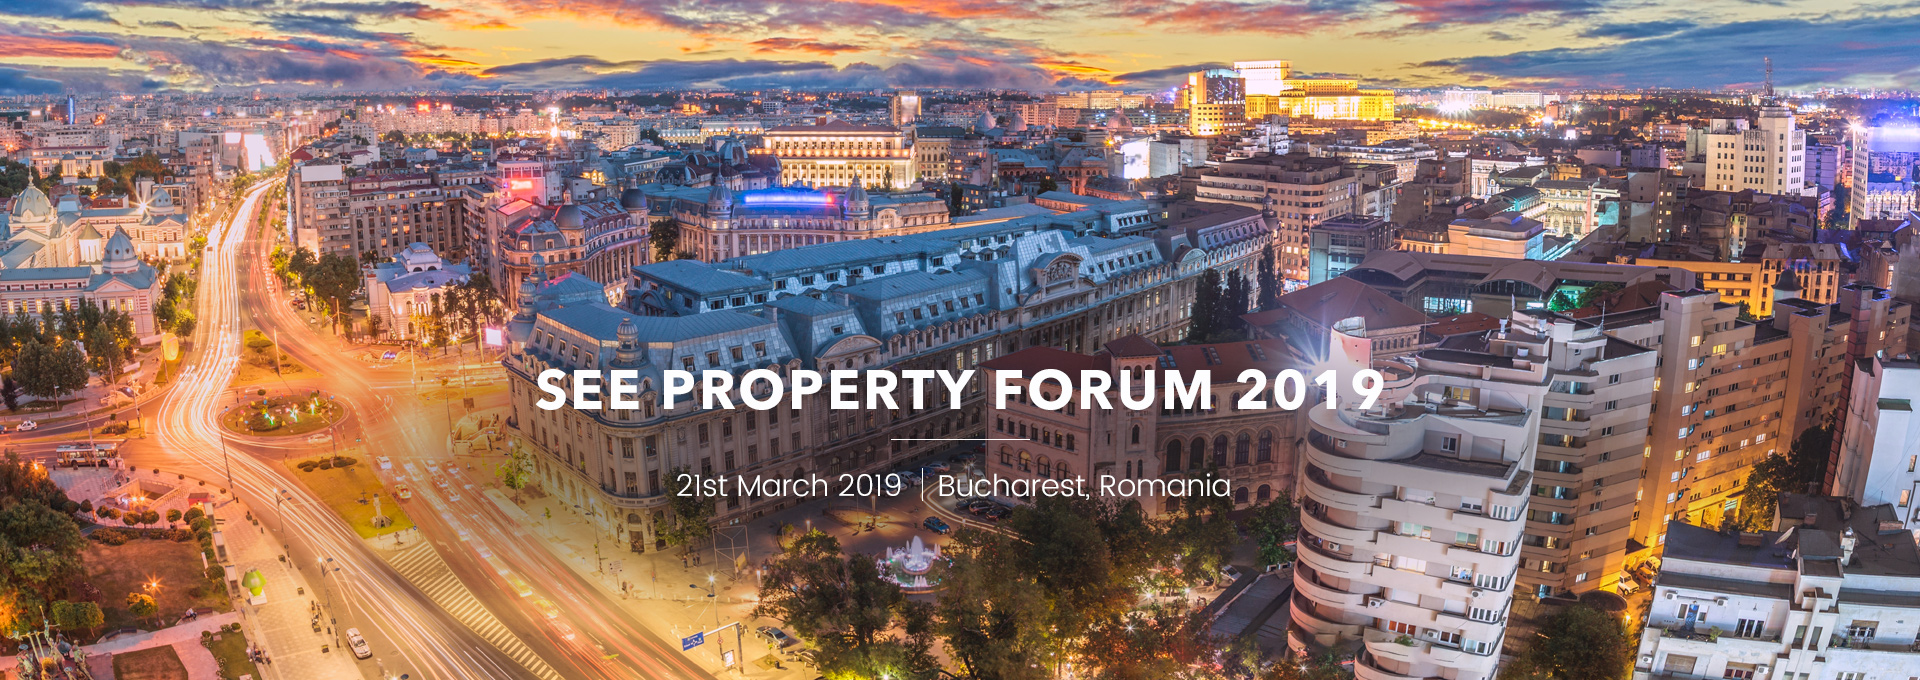 SEE_Property_Forum_2019_ROFMA